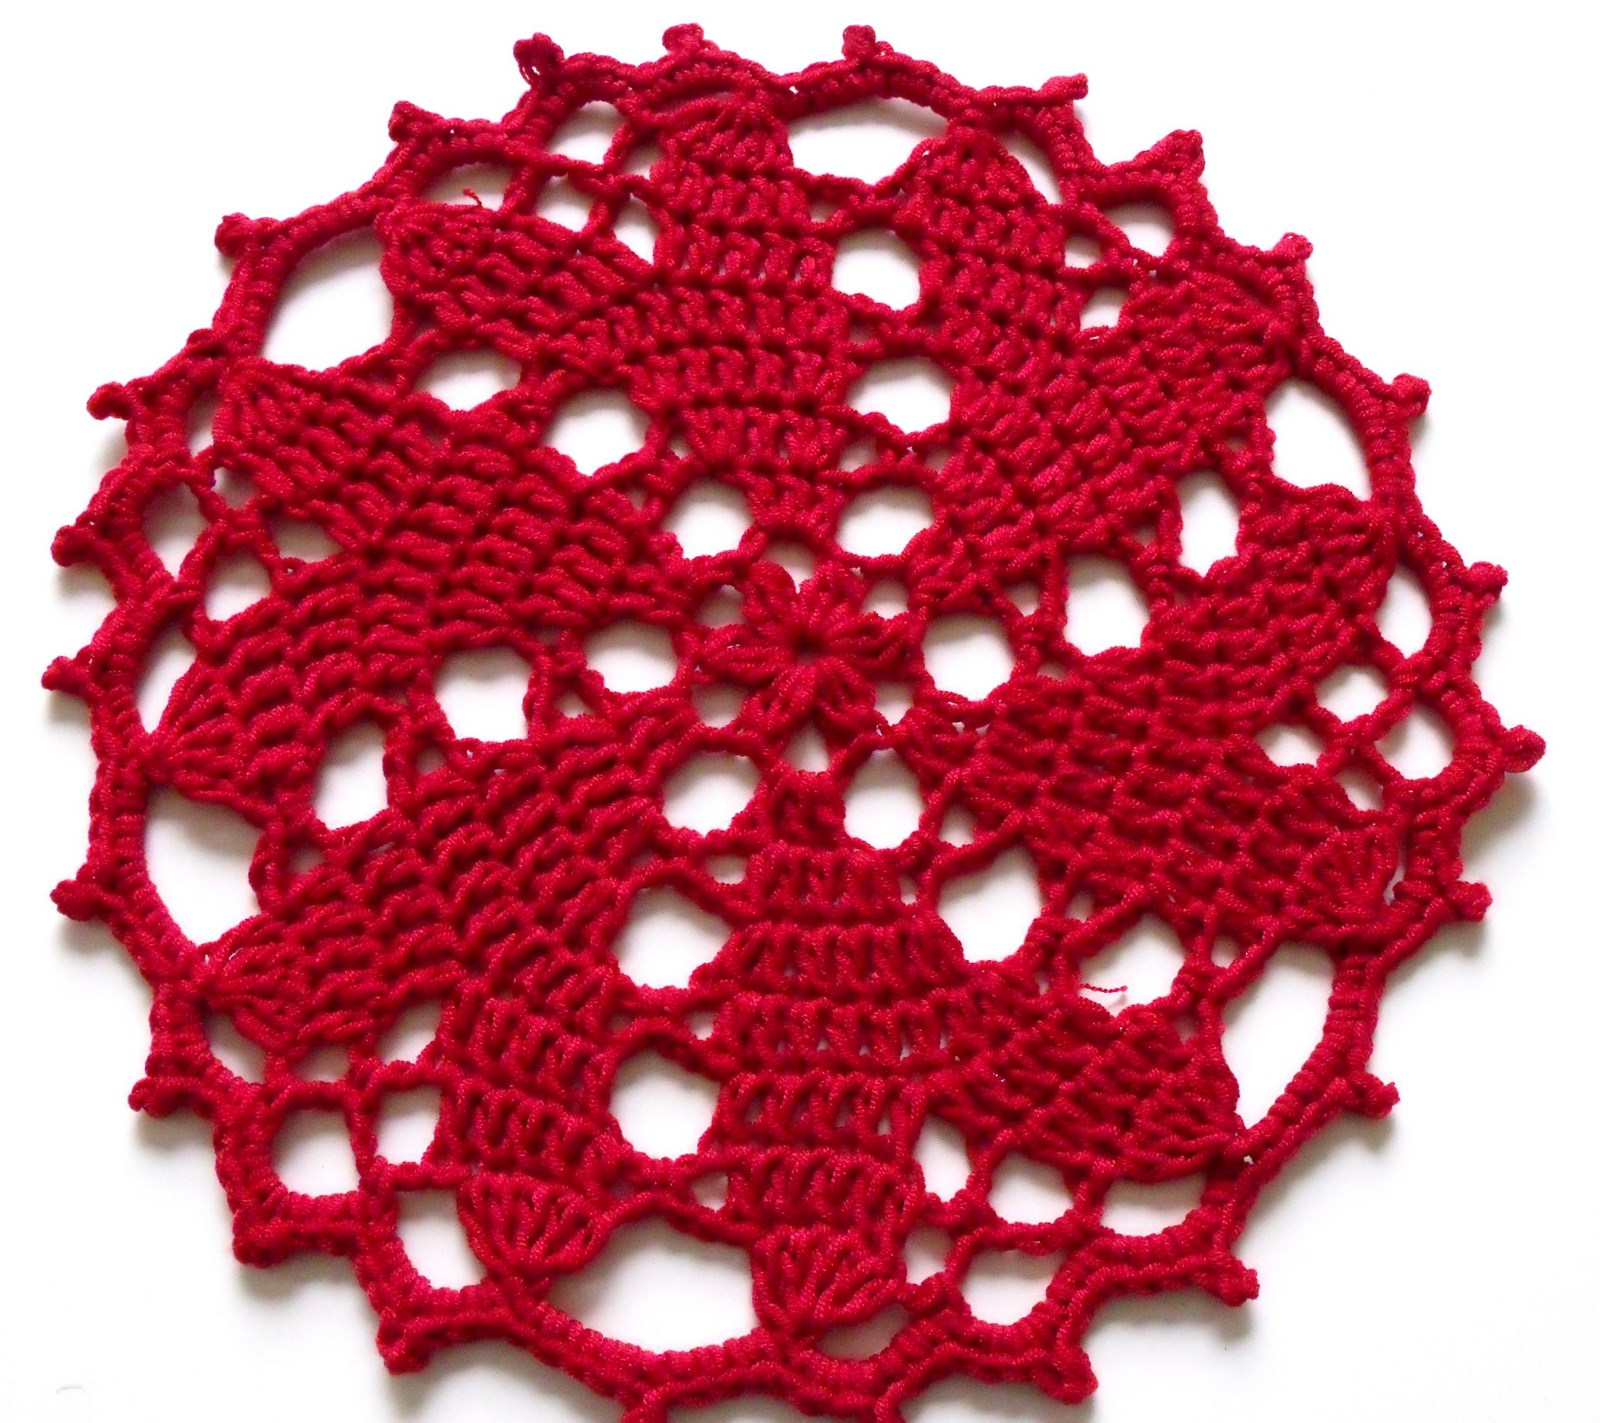 free crochet patterns, doiley, doily, home decor, how to crochet